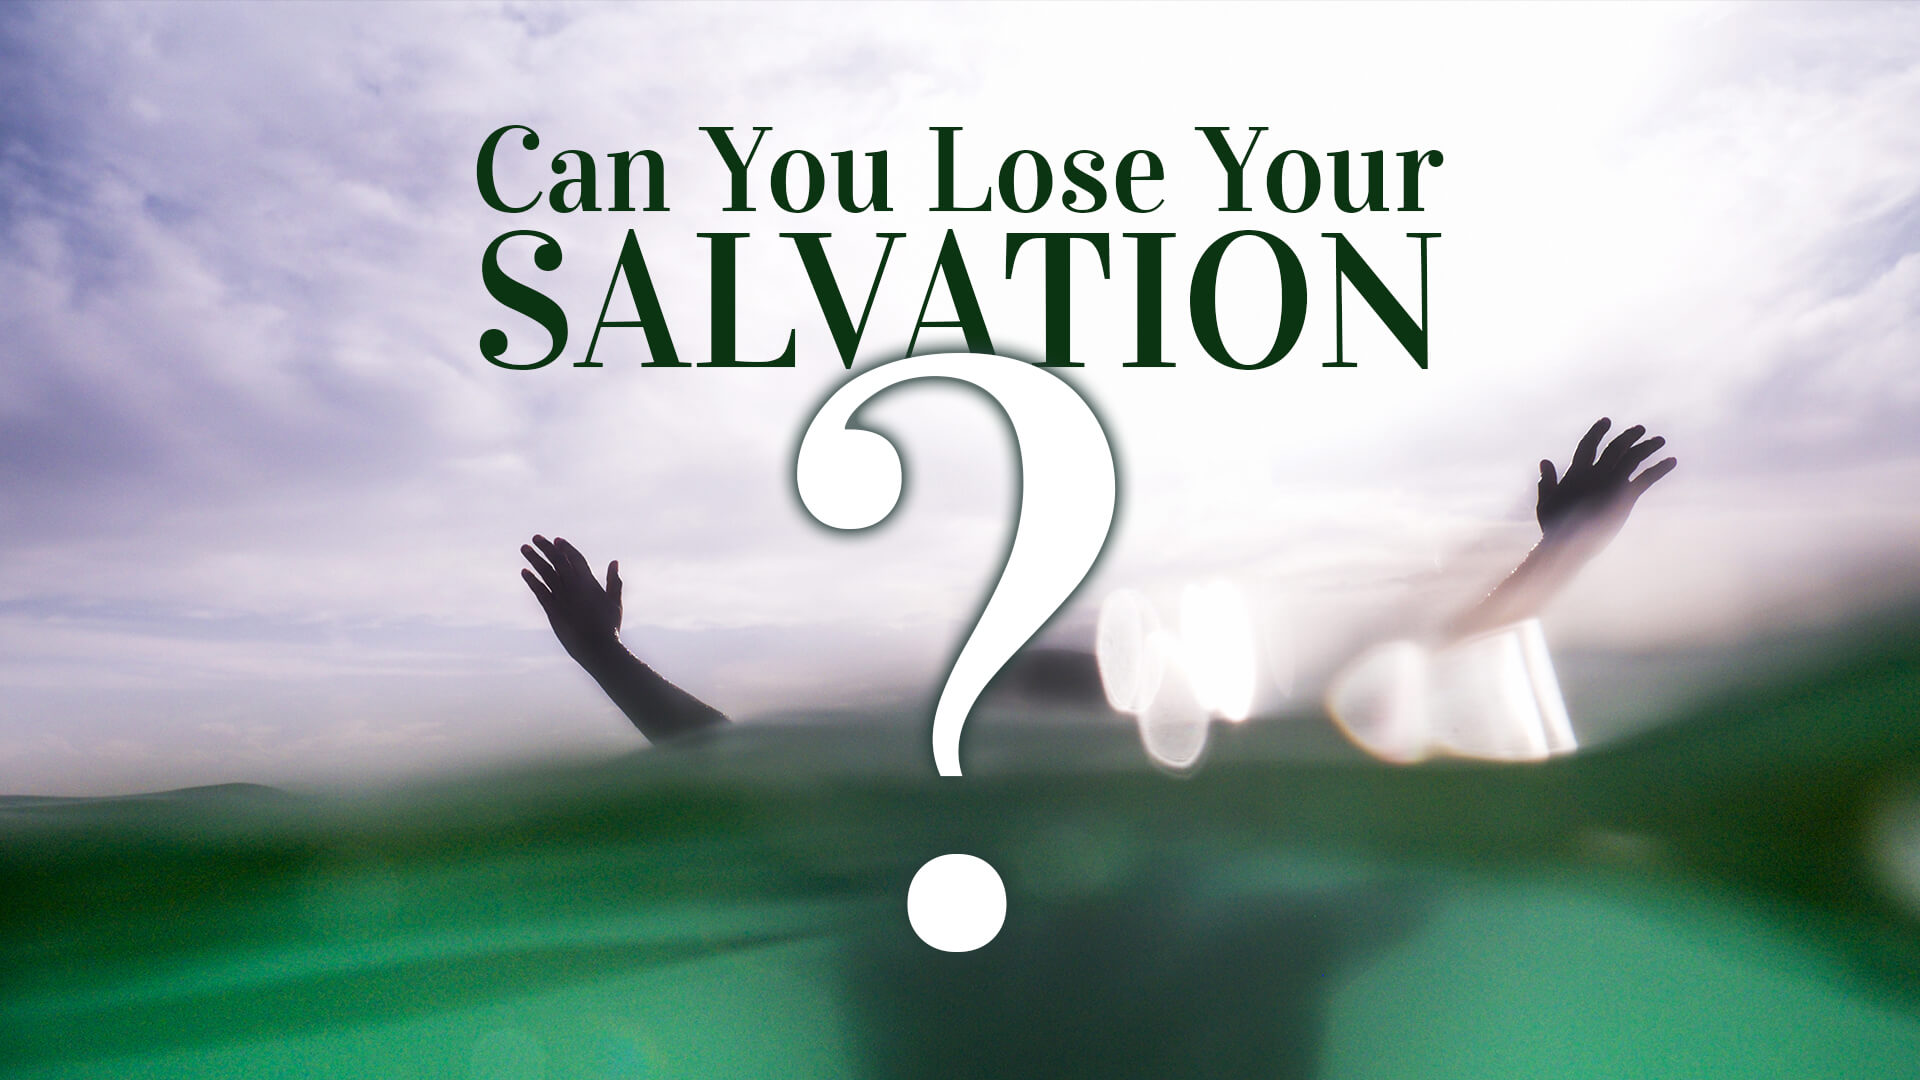 Can you loose your salvation Journey Church?